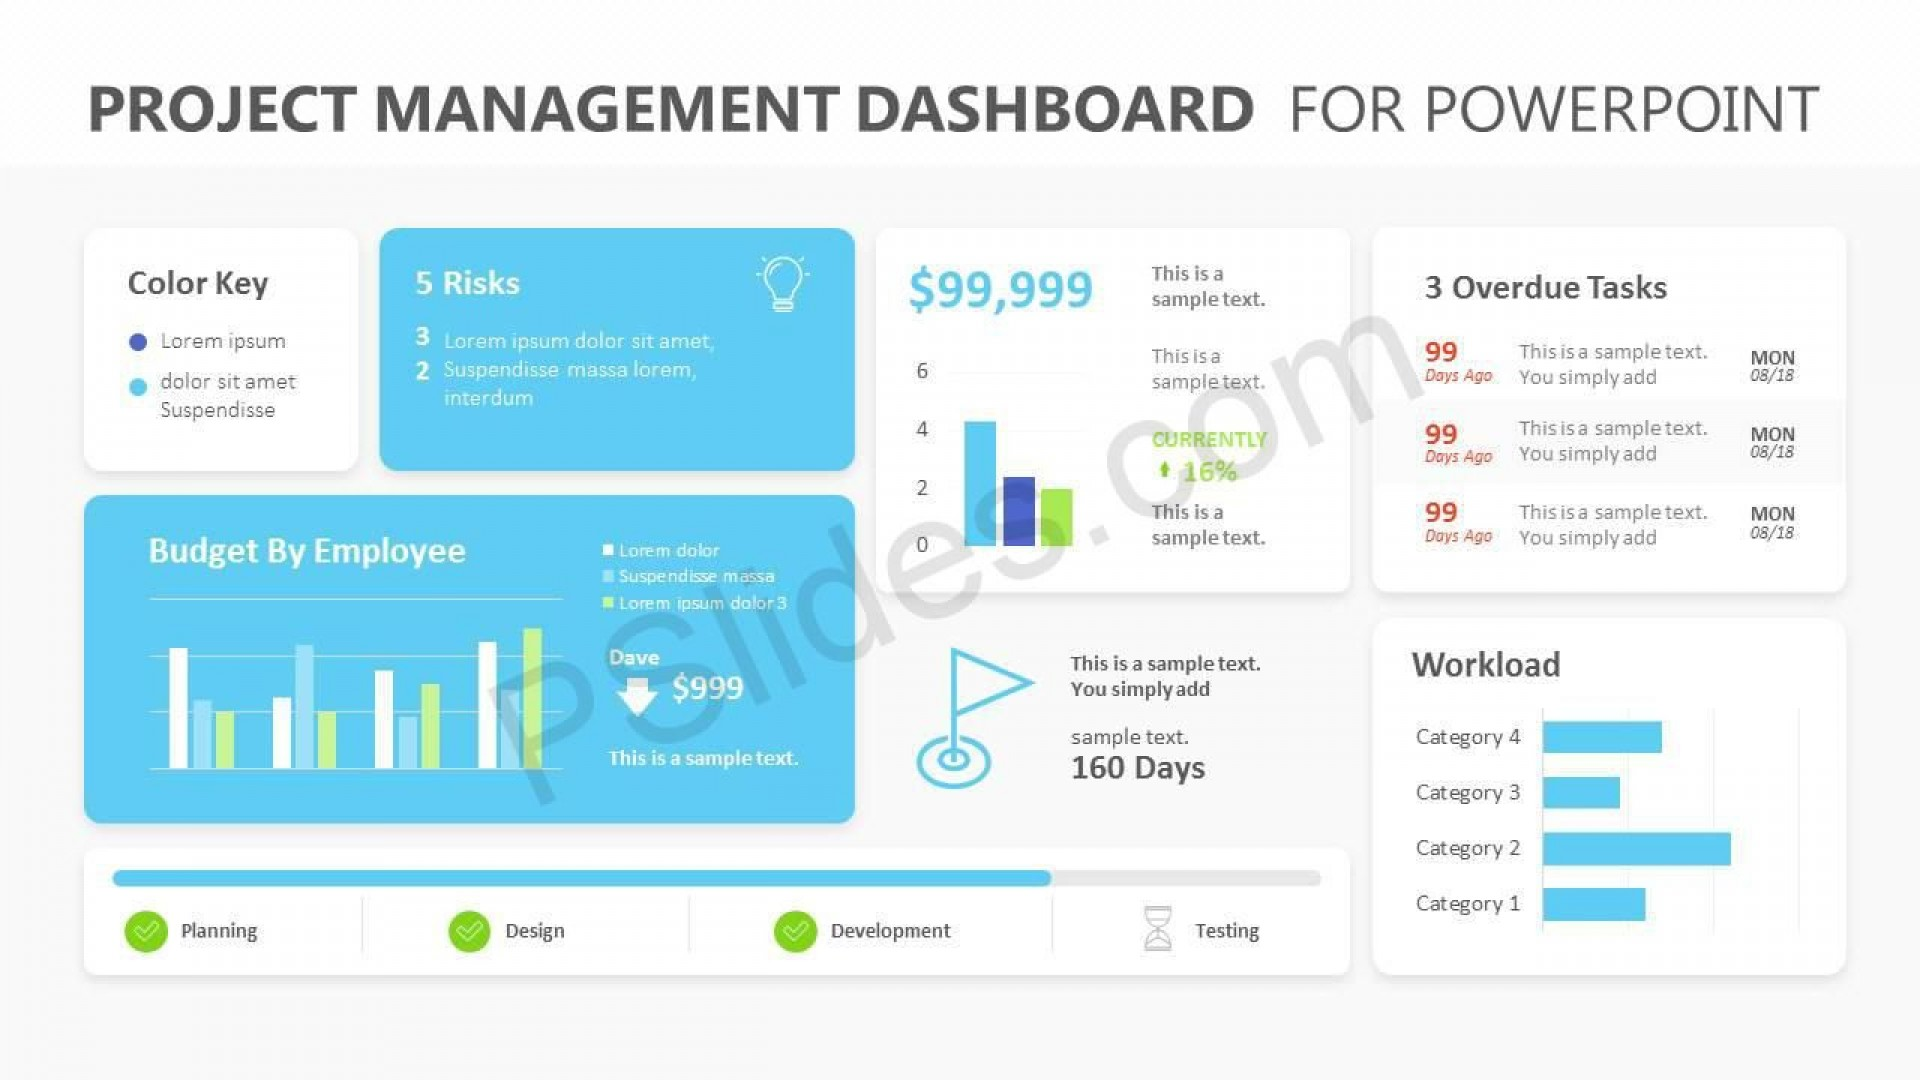 007 Remarkable Project Management Ppt Template Free Download High Definition  Sqert Powerpoint Dashboard1920